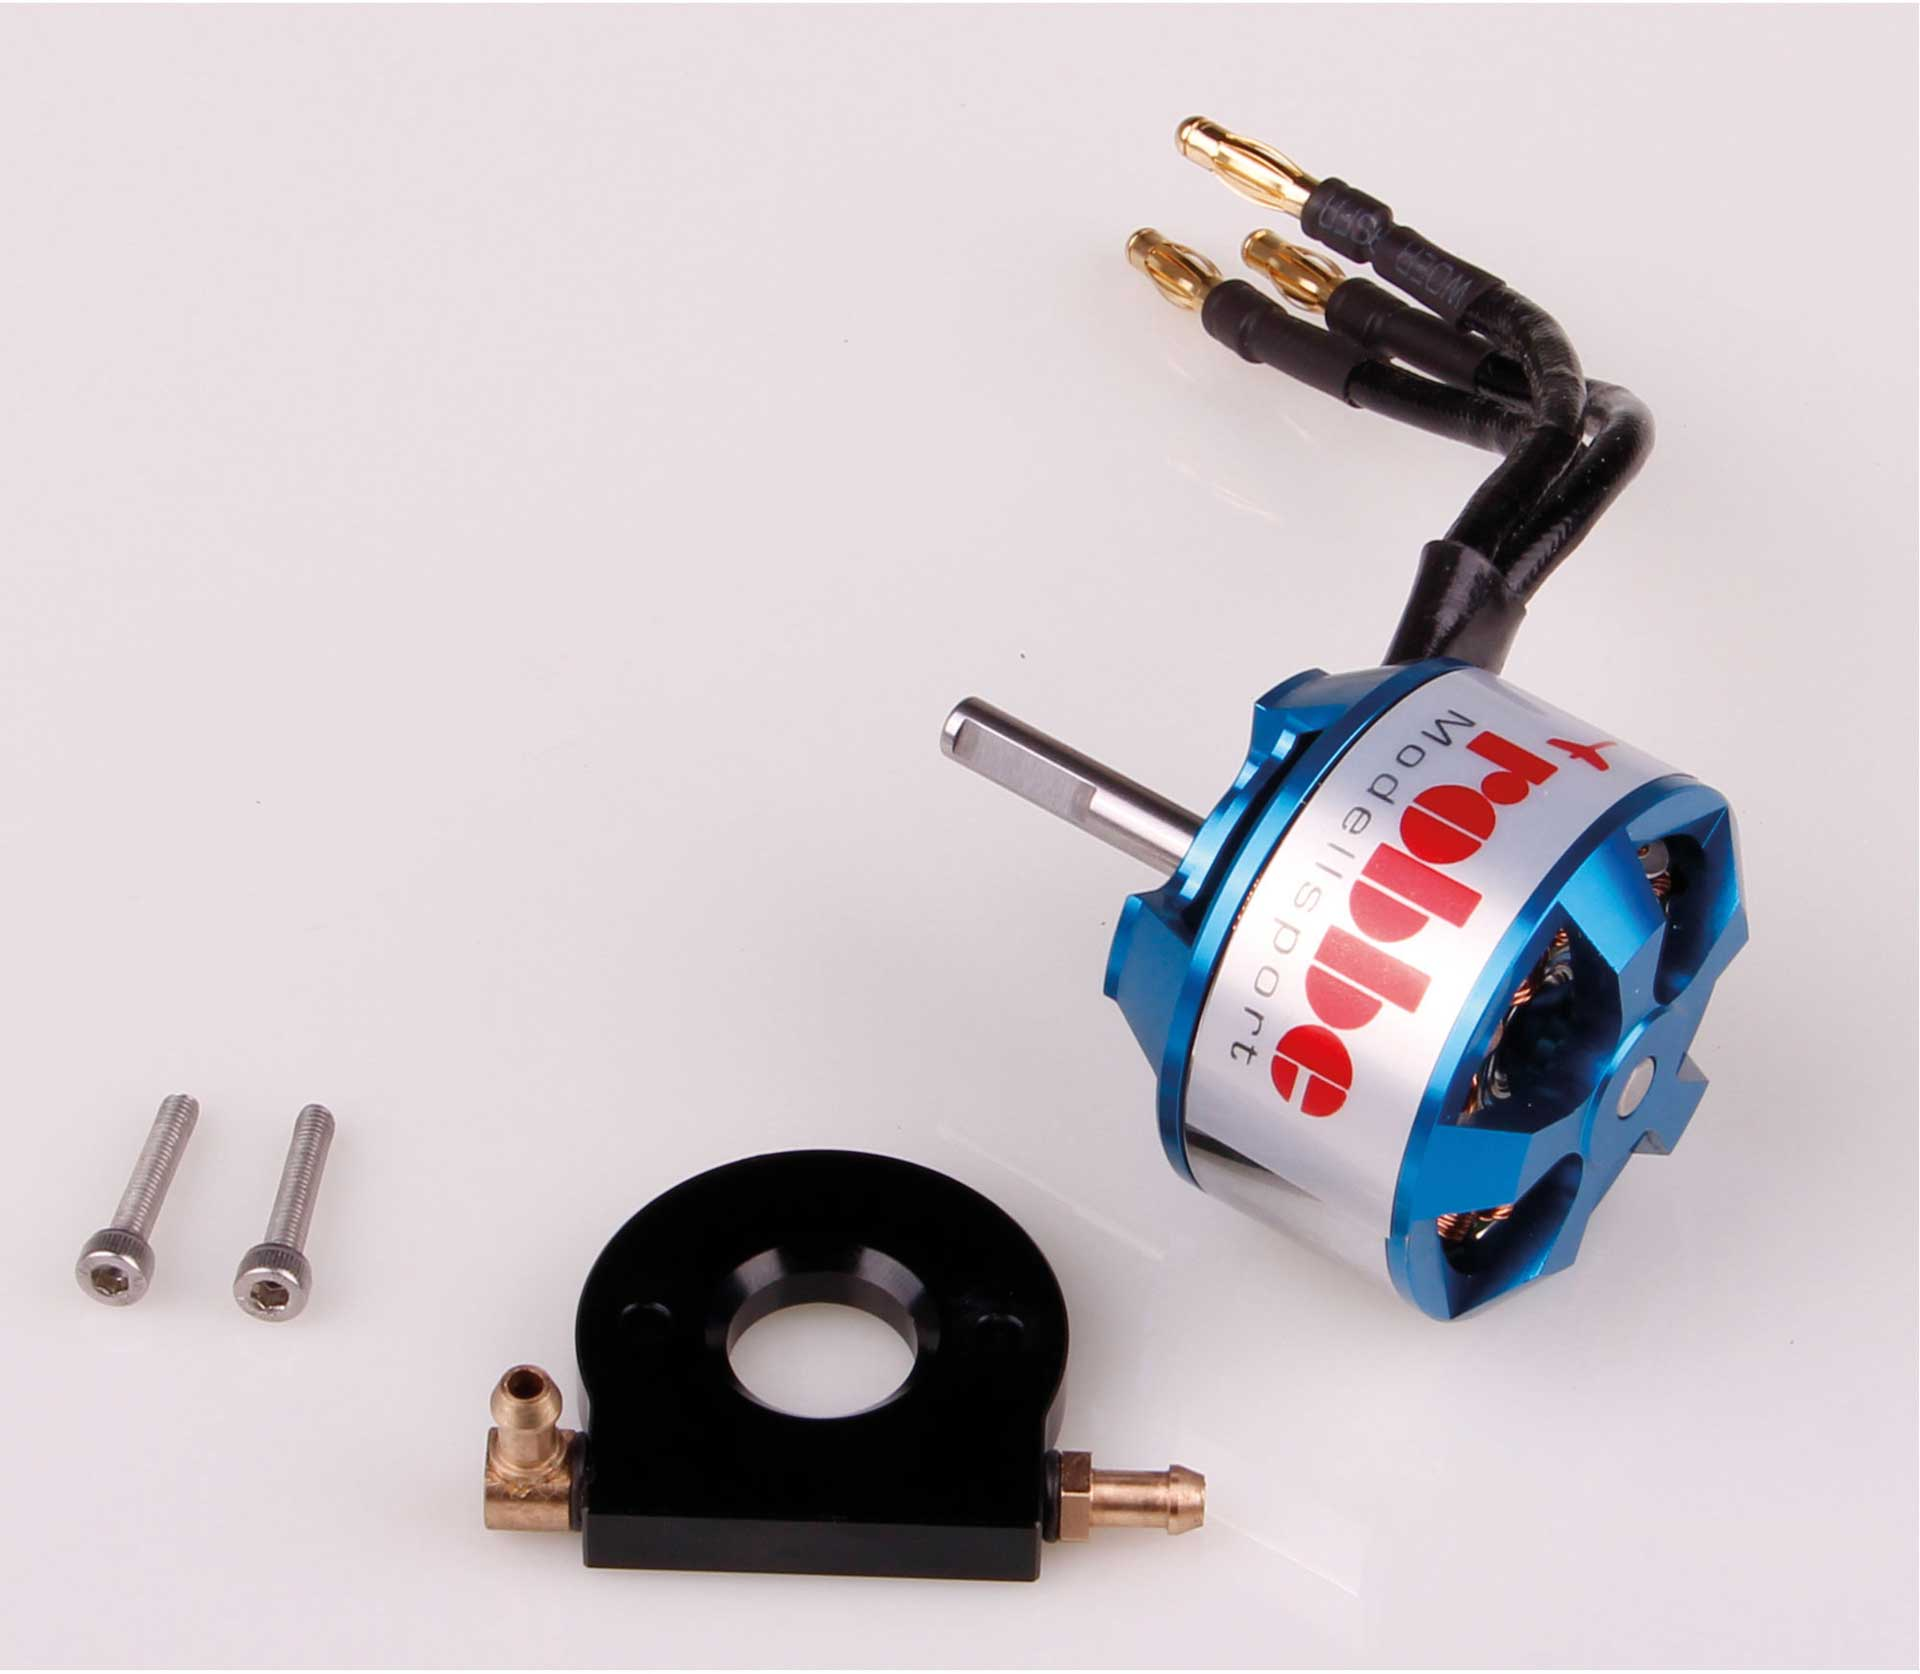 ROBBE Jet Force Brushless Motor